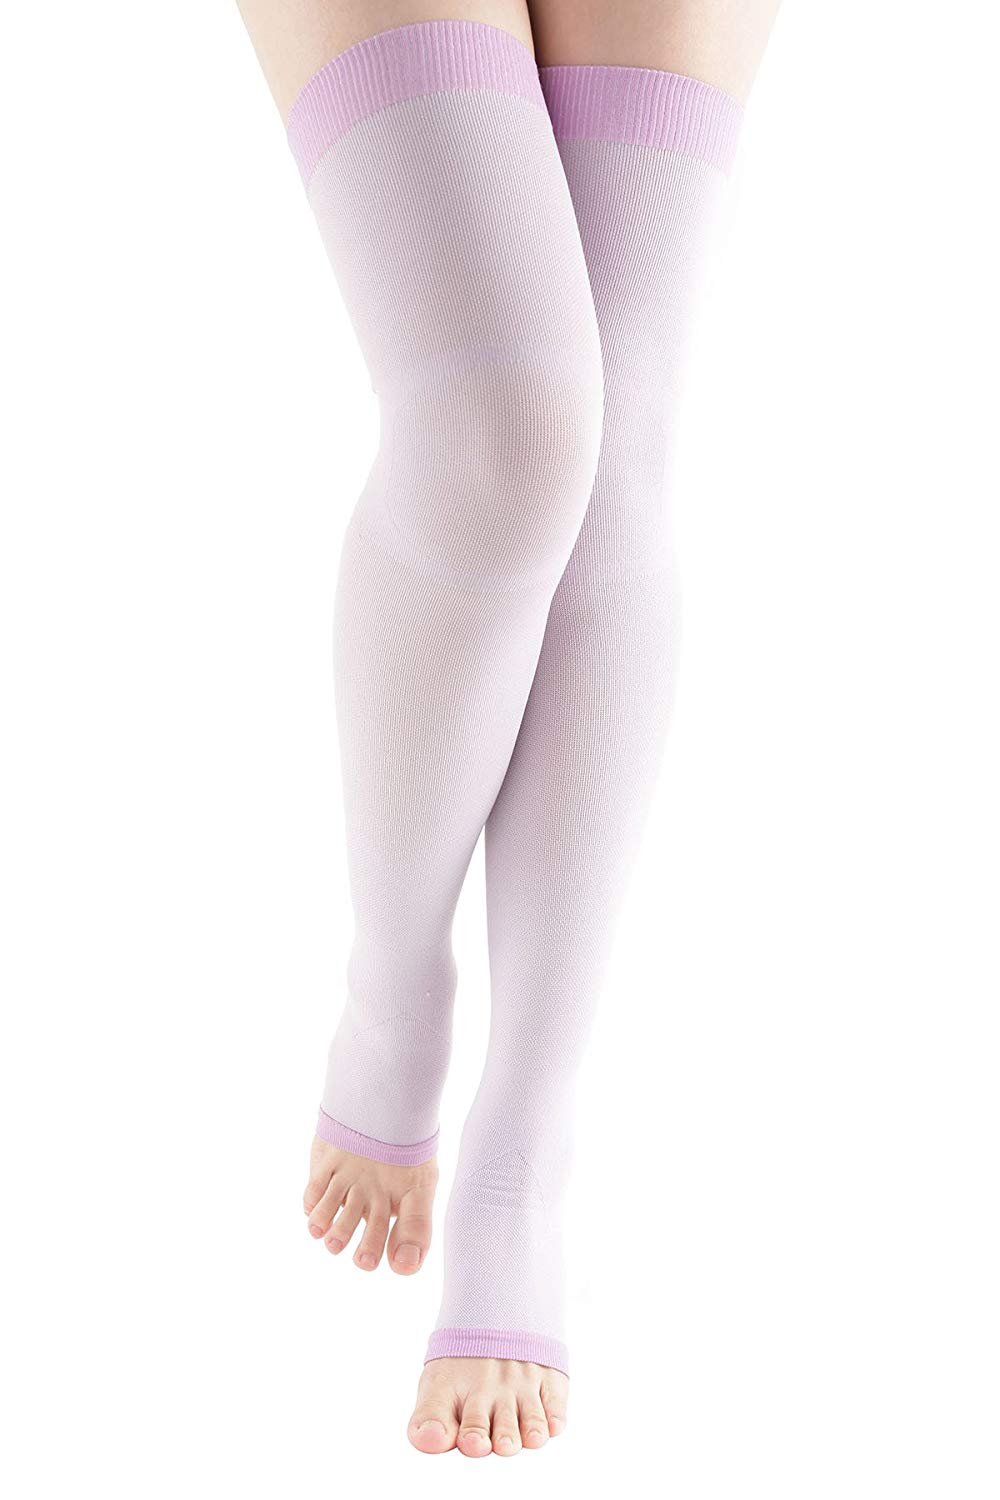 ab7a6193dc941 Get Quotations · MD Women's Overnight Sleep Wearing Slimming Compression  Colorful Thigh Highs 8-15mmHg Purple9-11